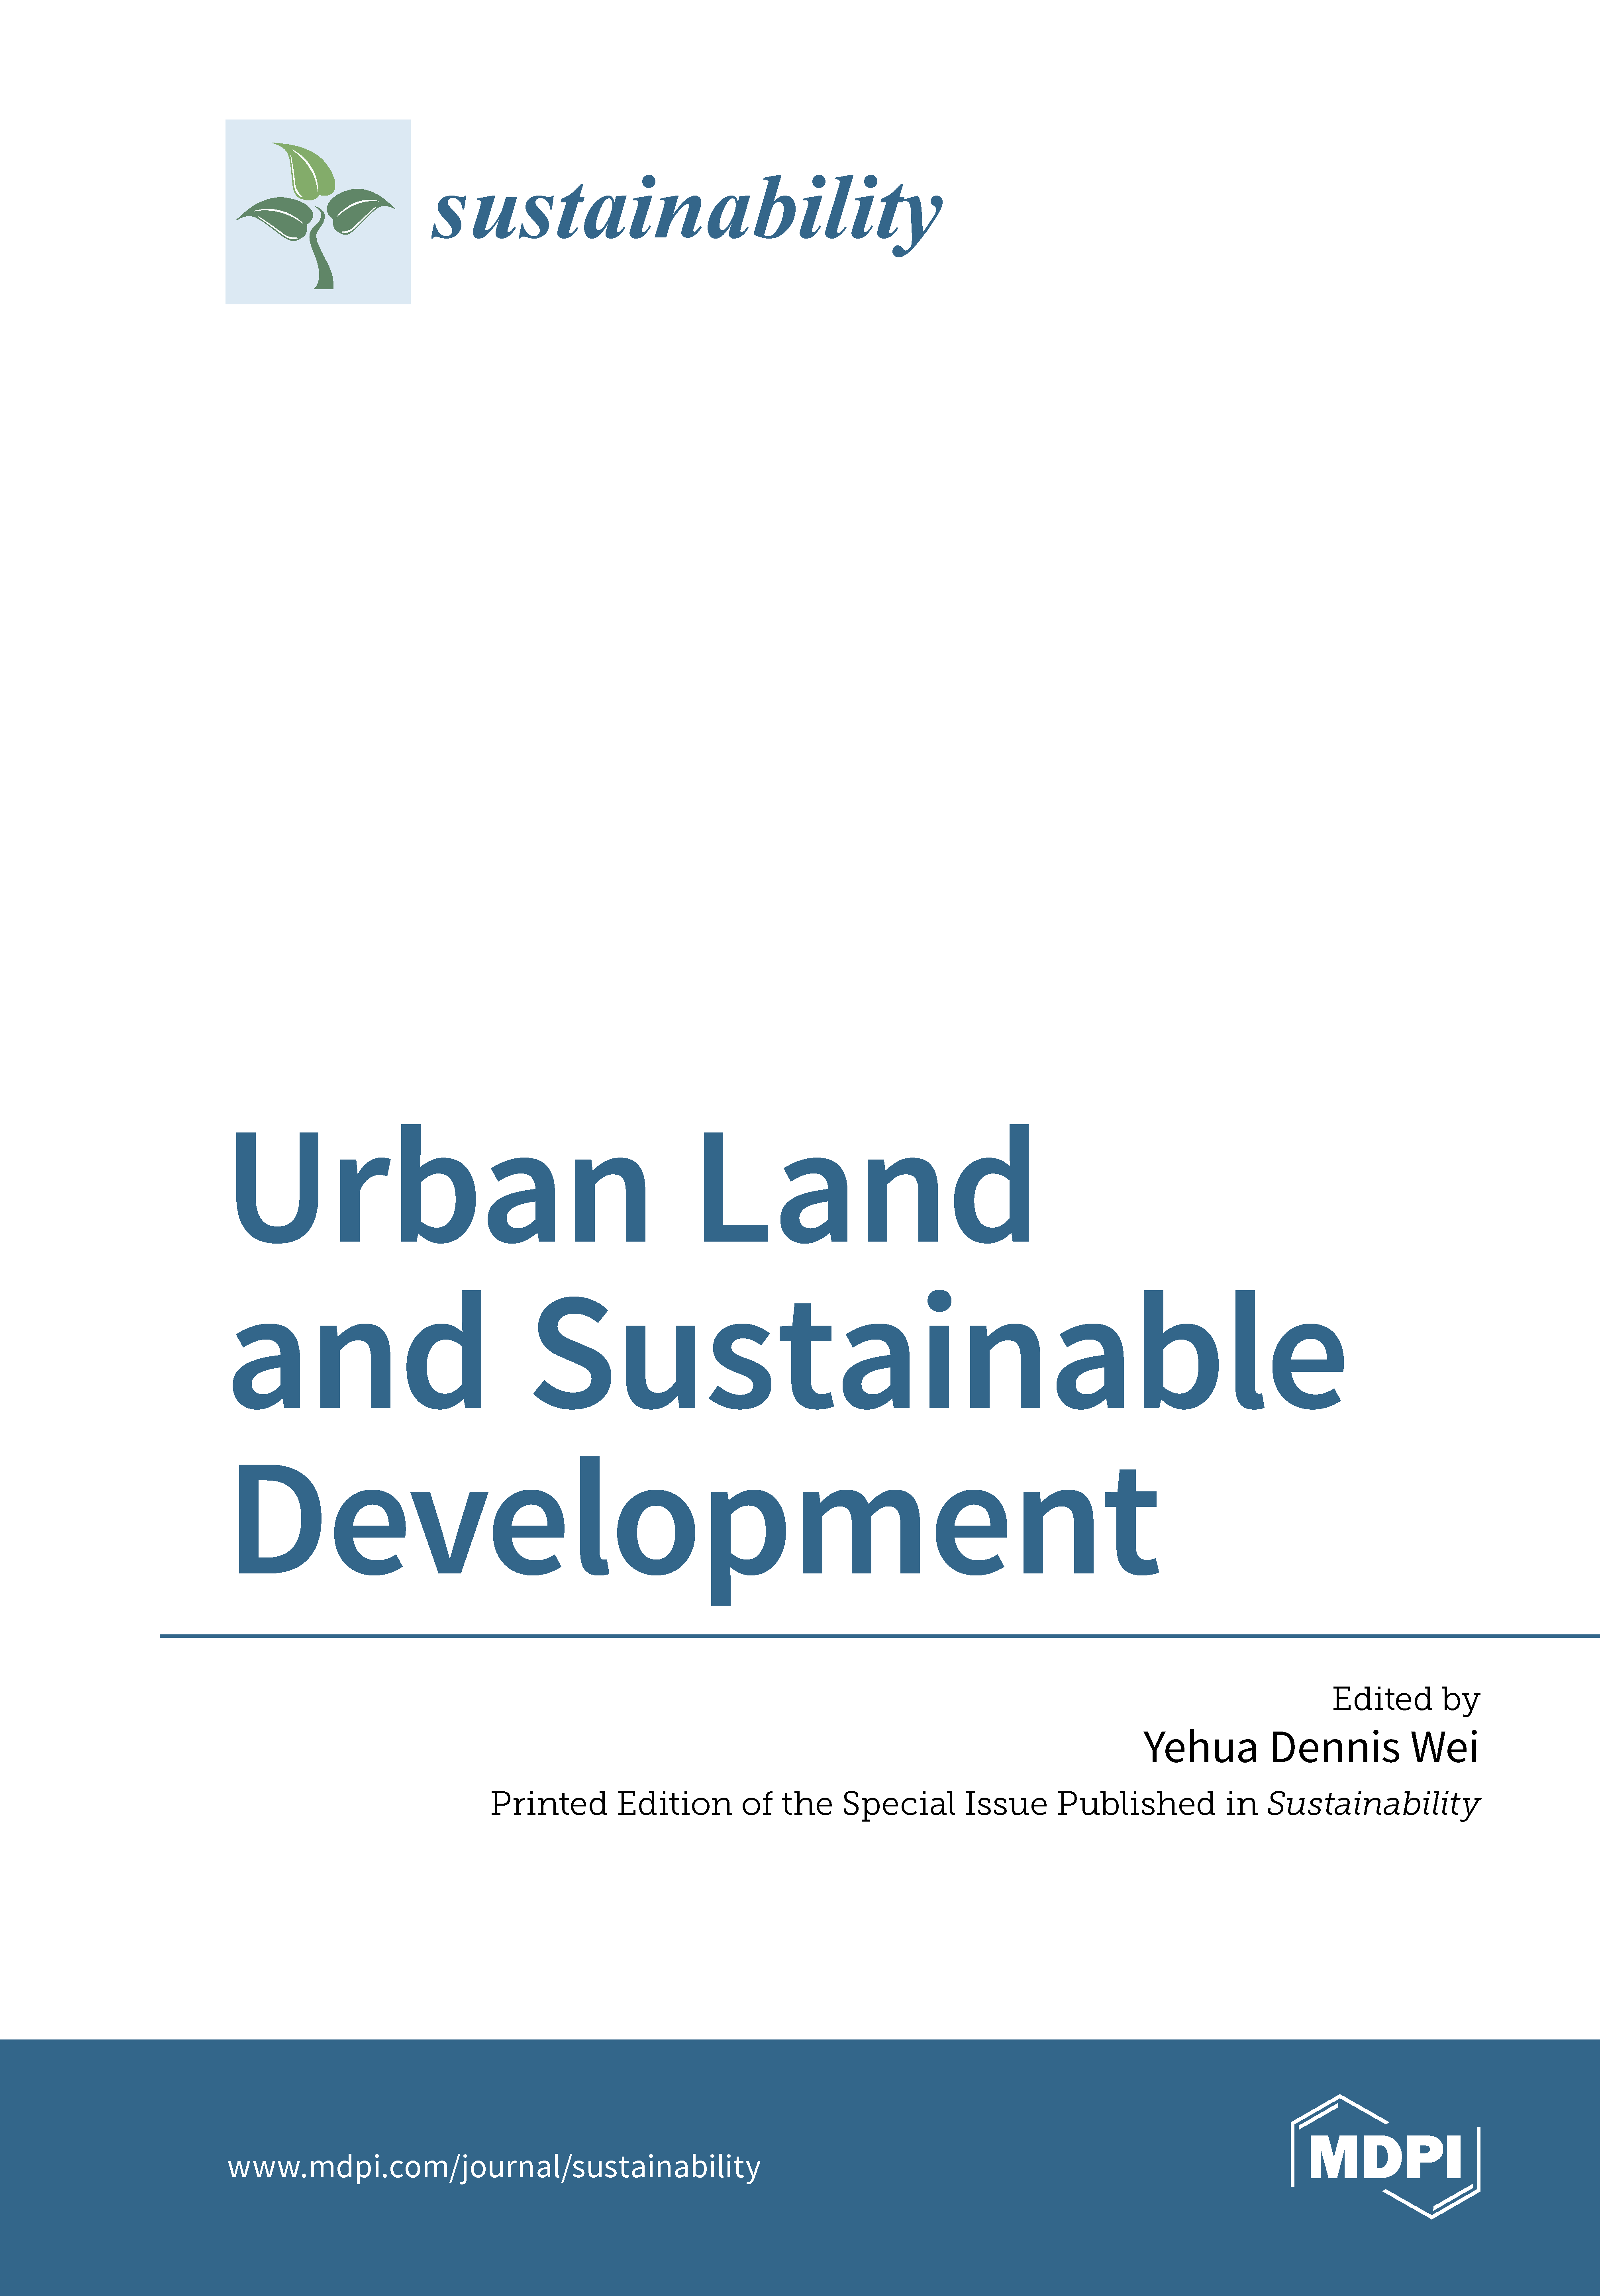 Urban Land and Sustainable Development